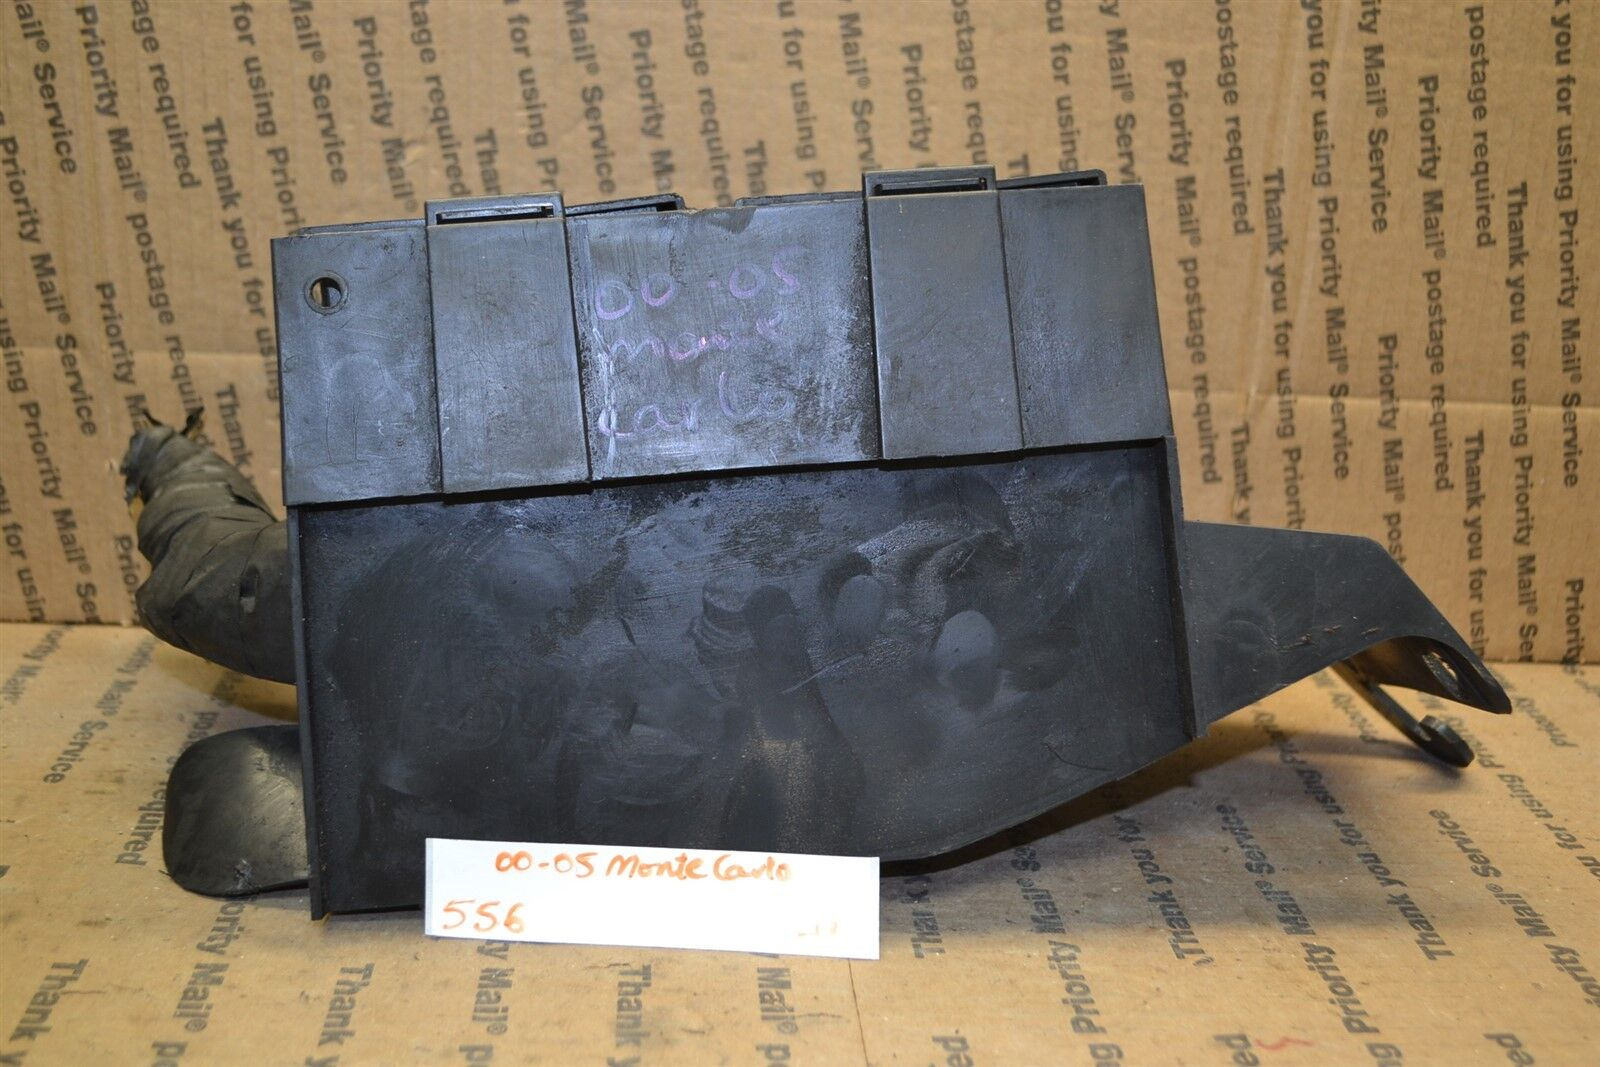 Used 2005 Chevrolet Monte Carlo Computers And Cruise Control Parts Fuse Box 2000 Junction Oem 154229981 Module 556 6a1